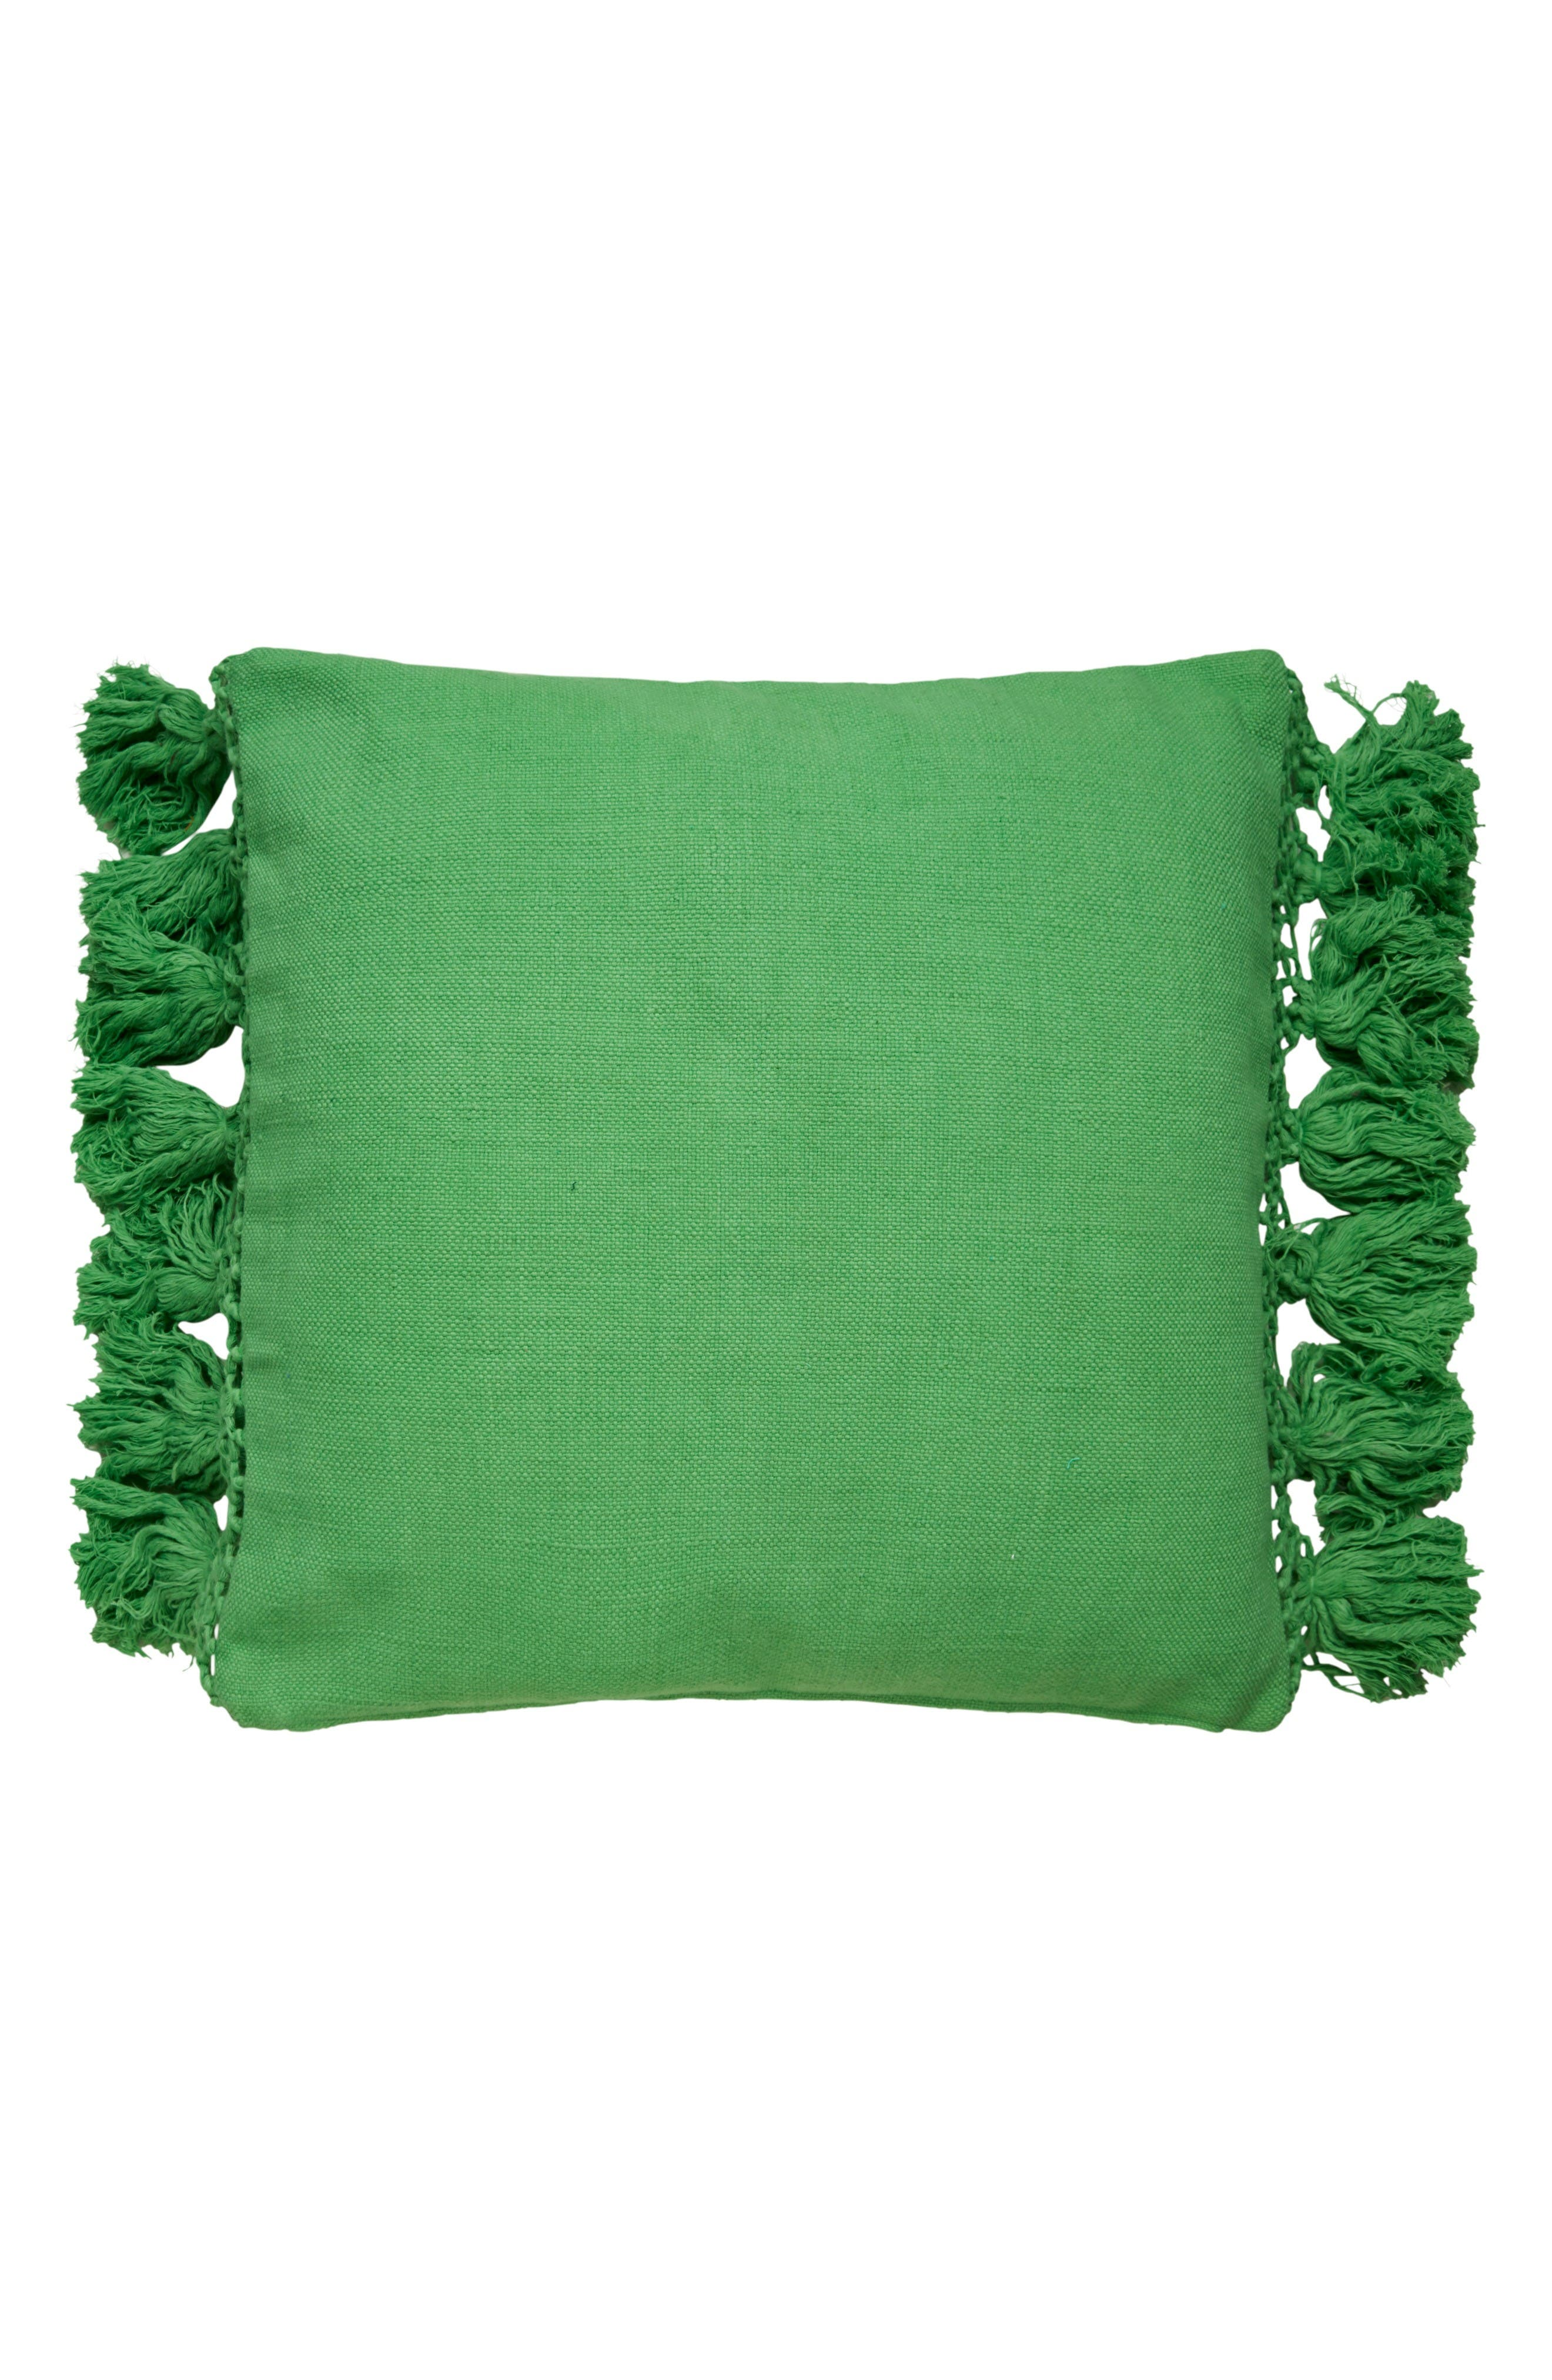 Alternate Image 1 Selected - kate spade new york tassel accent pillow